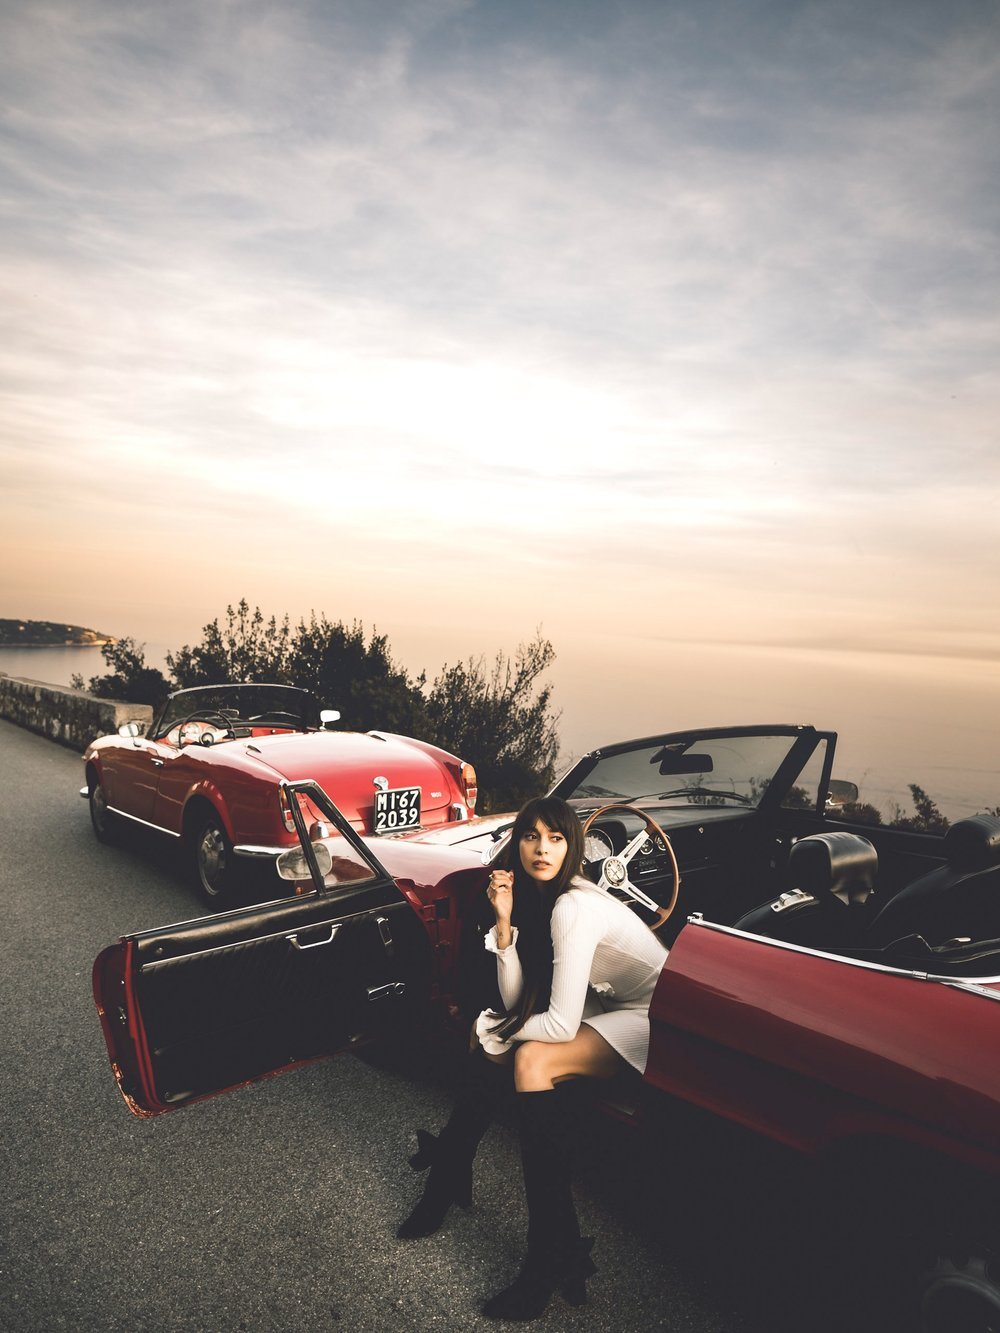 Olympus PEN 12mm f/2.0 Lens Wide Angle Zara Martin Road Trip Monaco Monte Carlo Sunset Golden Hour Alfa Romeo Vintage Italian Sports Car Cars Sportscar Sportscars Passion Project